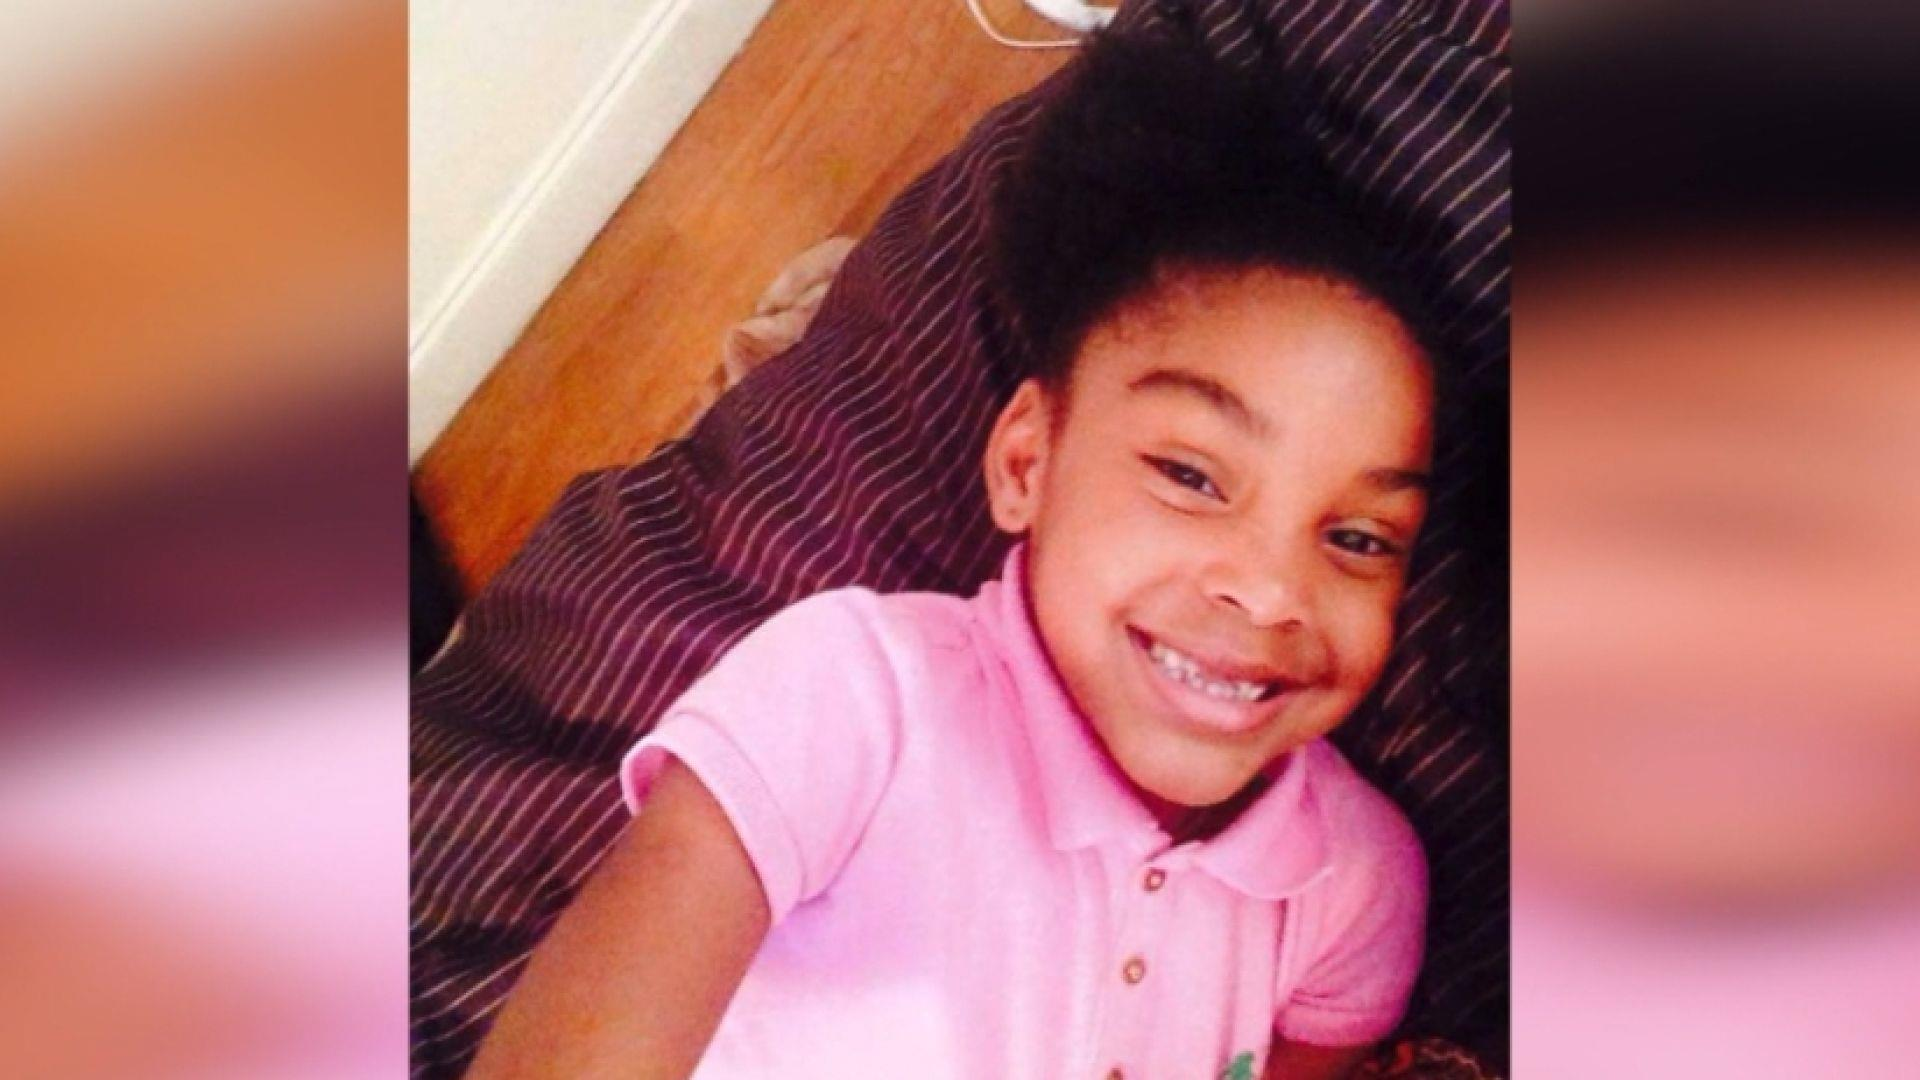 deadly dare girl dies after drinking boiling water   nbc news